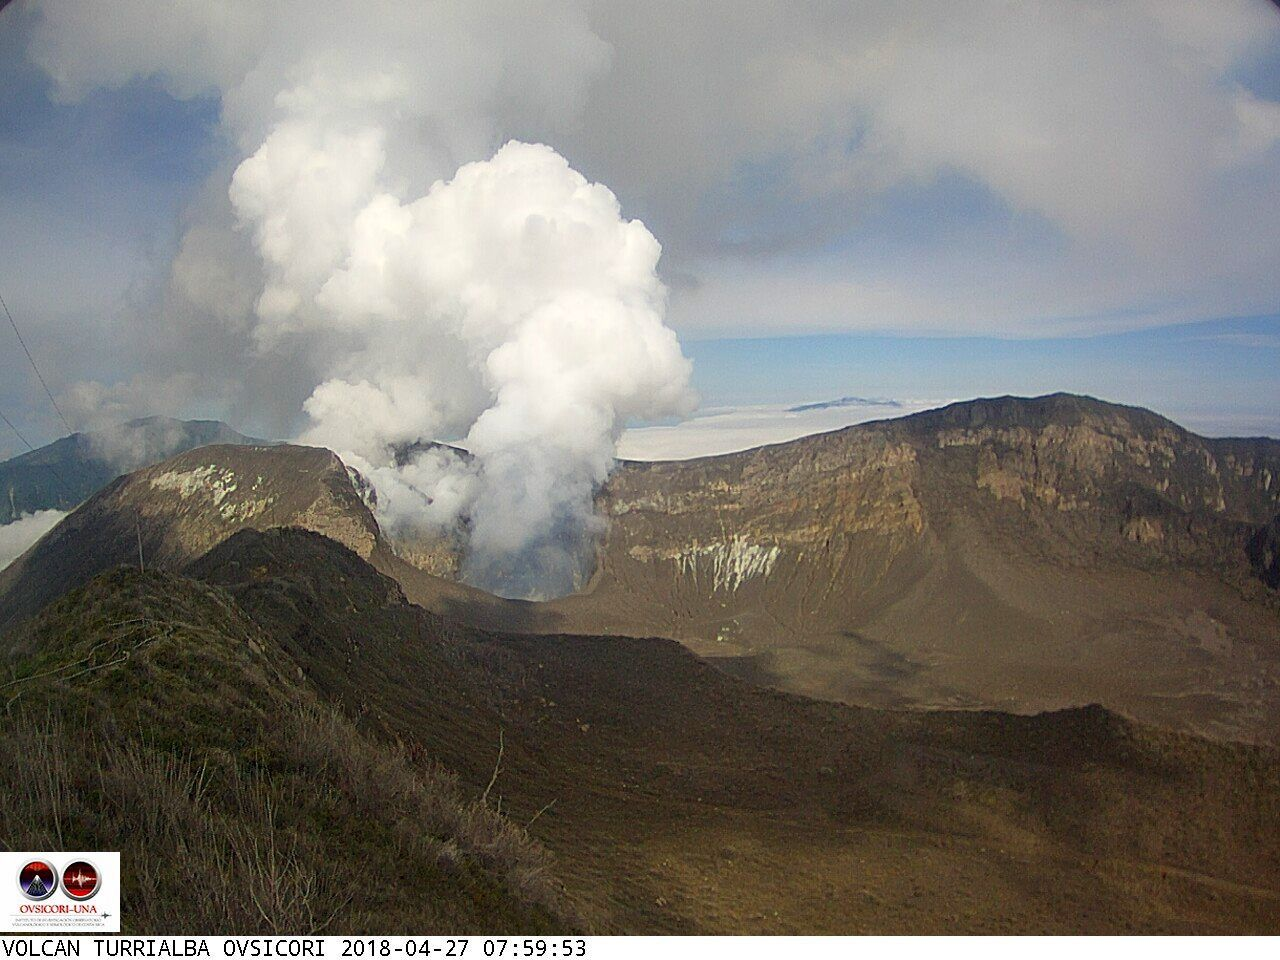 Turrialba - low plume of gas and steam on 28.04.2018, respectively at 7:59 and 8:59 loc. - Ovsicori webcam